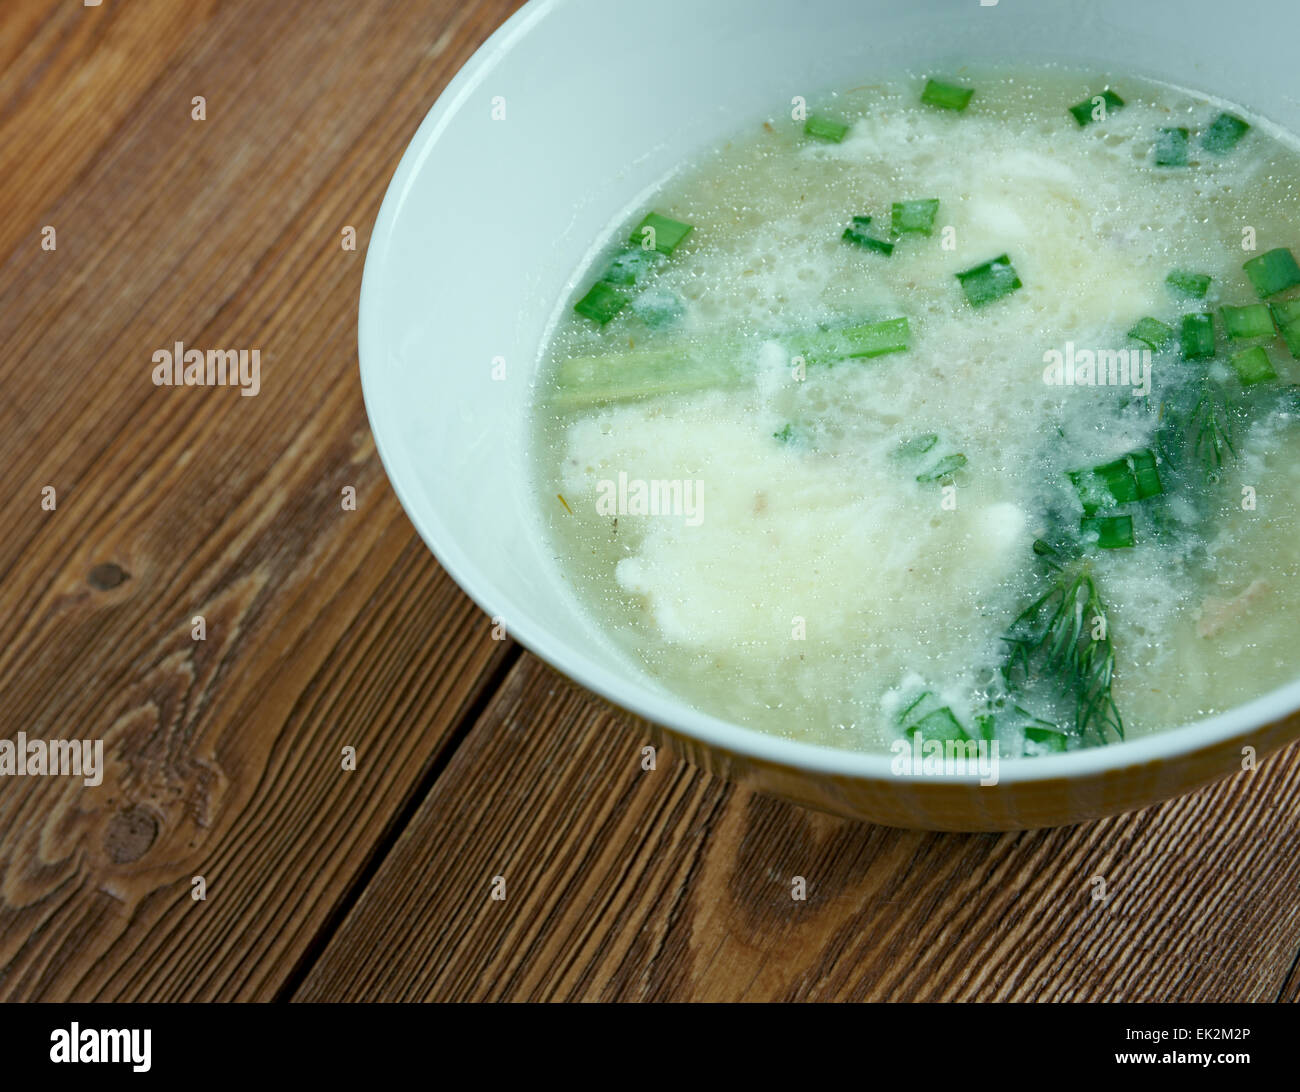 Sauer Suppe - Hot and sour soup of Bavarian cuisine - Stock Image